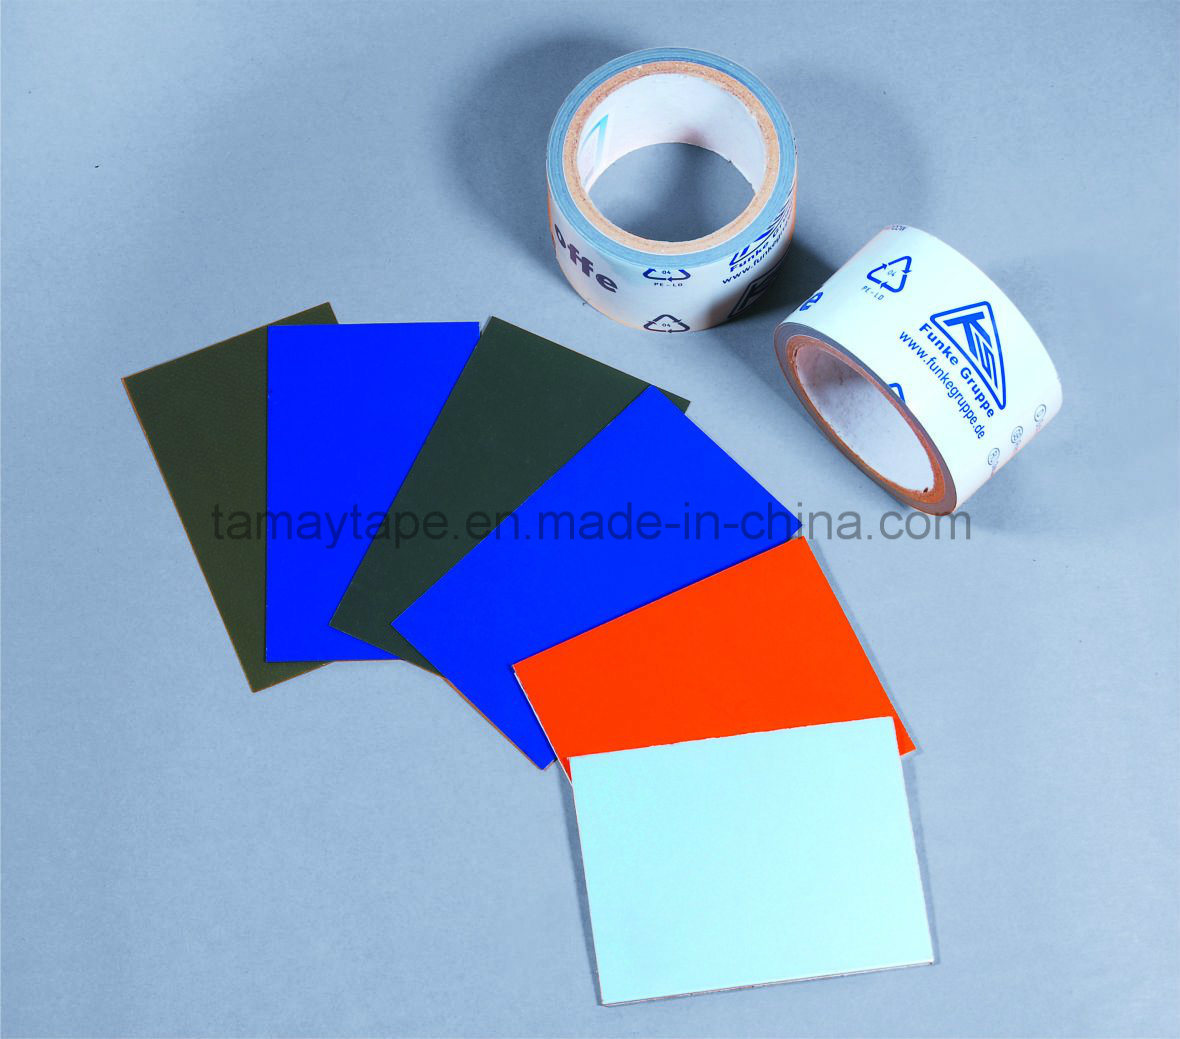 Blue Protective Film (DM-092)